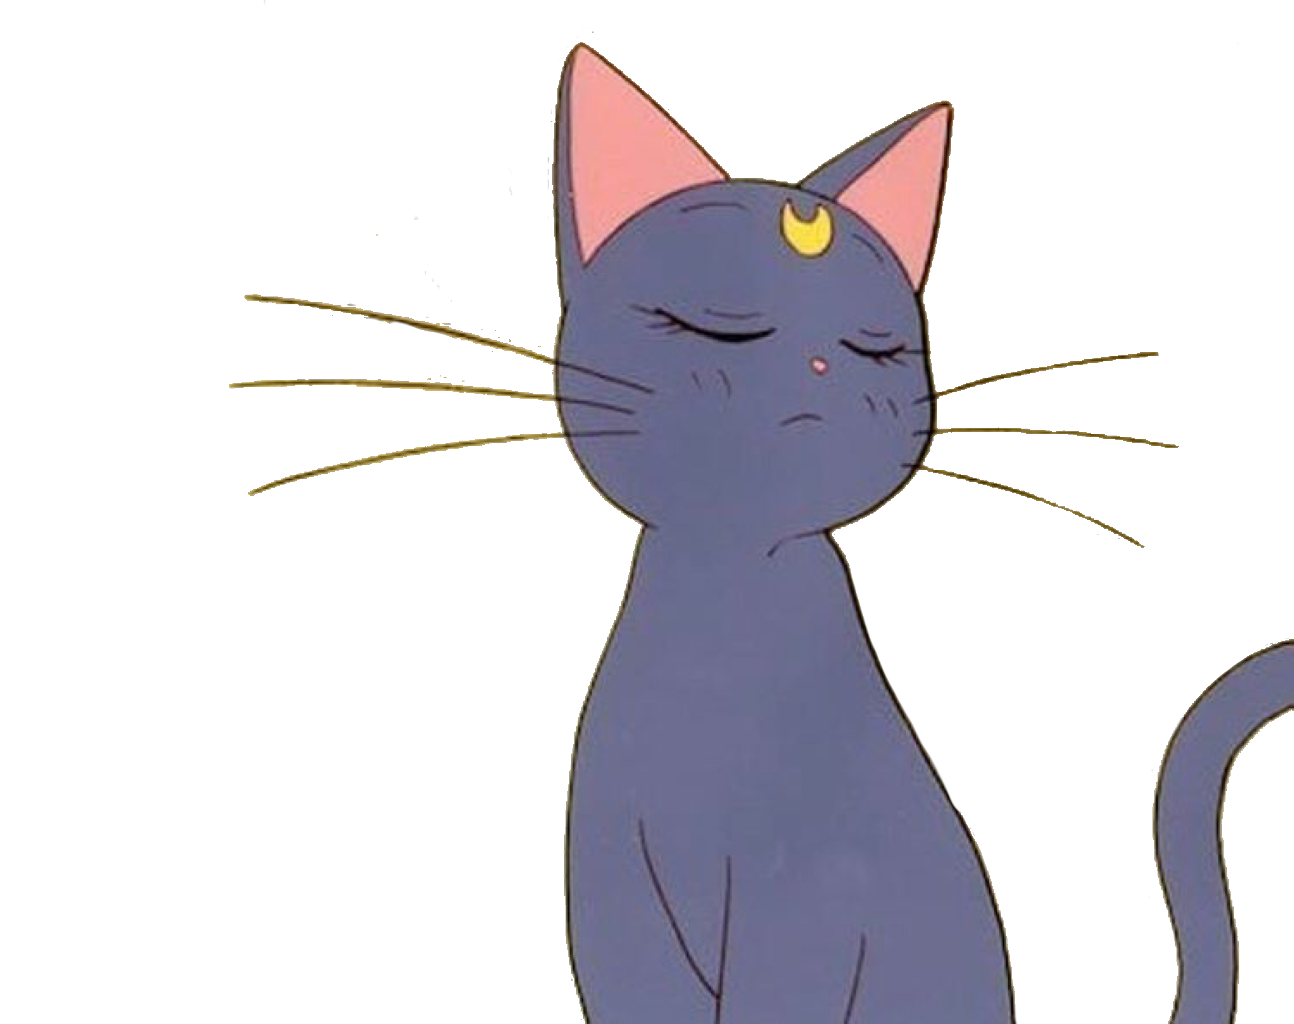 Anime cats png. Cat sailormoon aesthetic tumblr